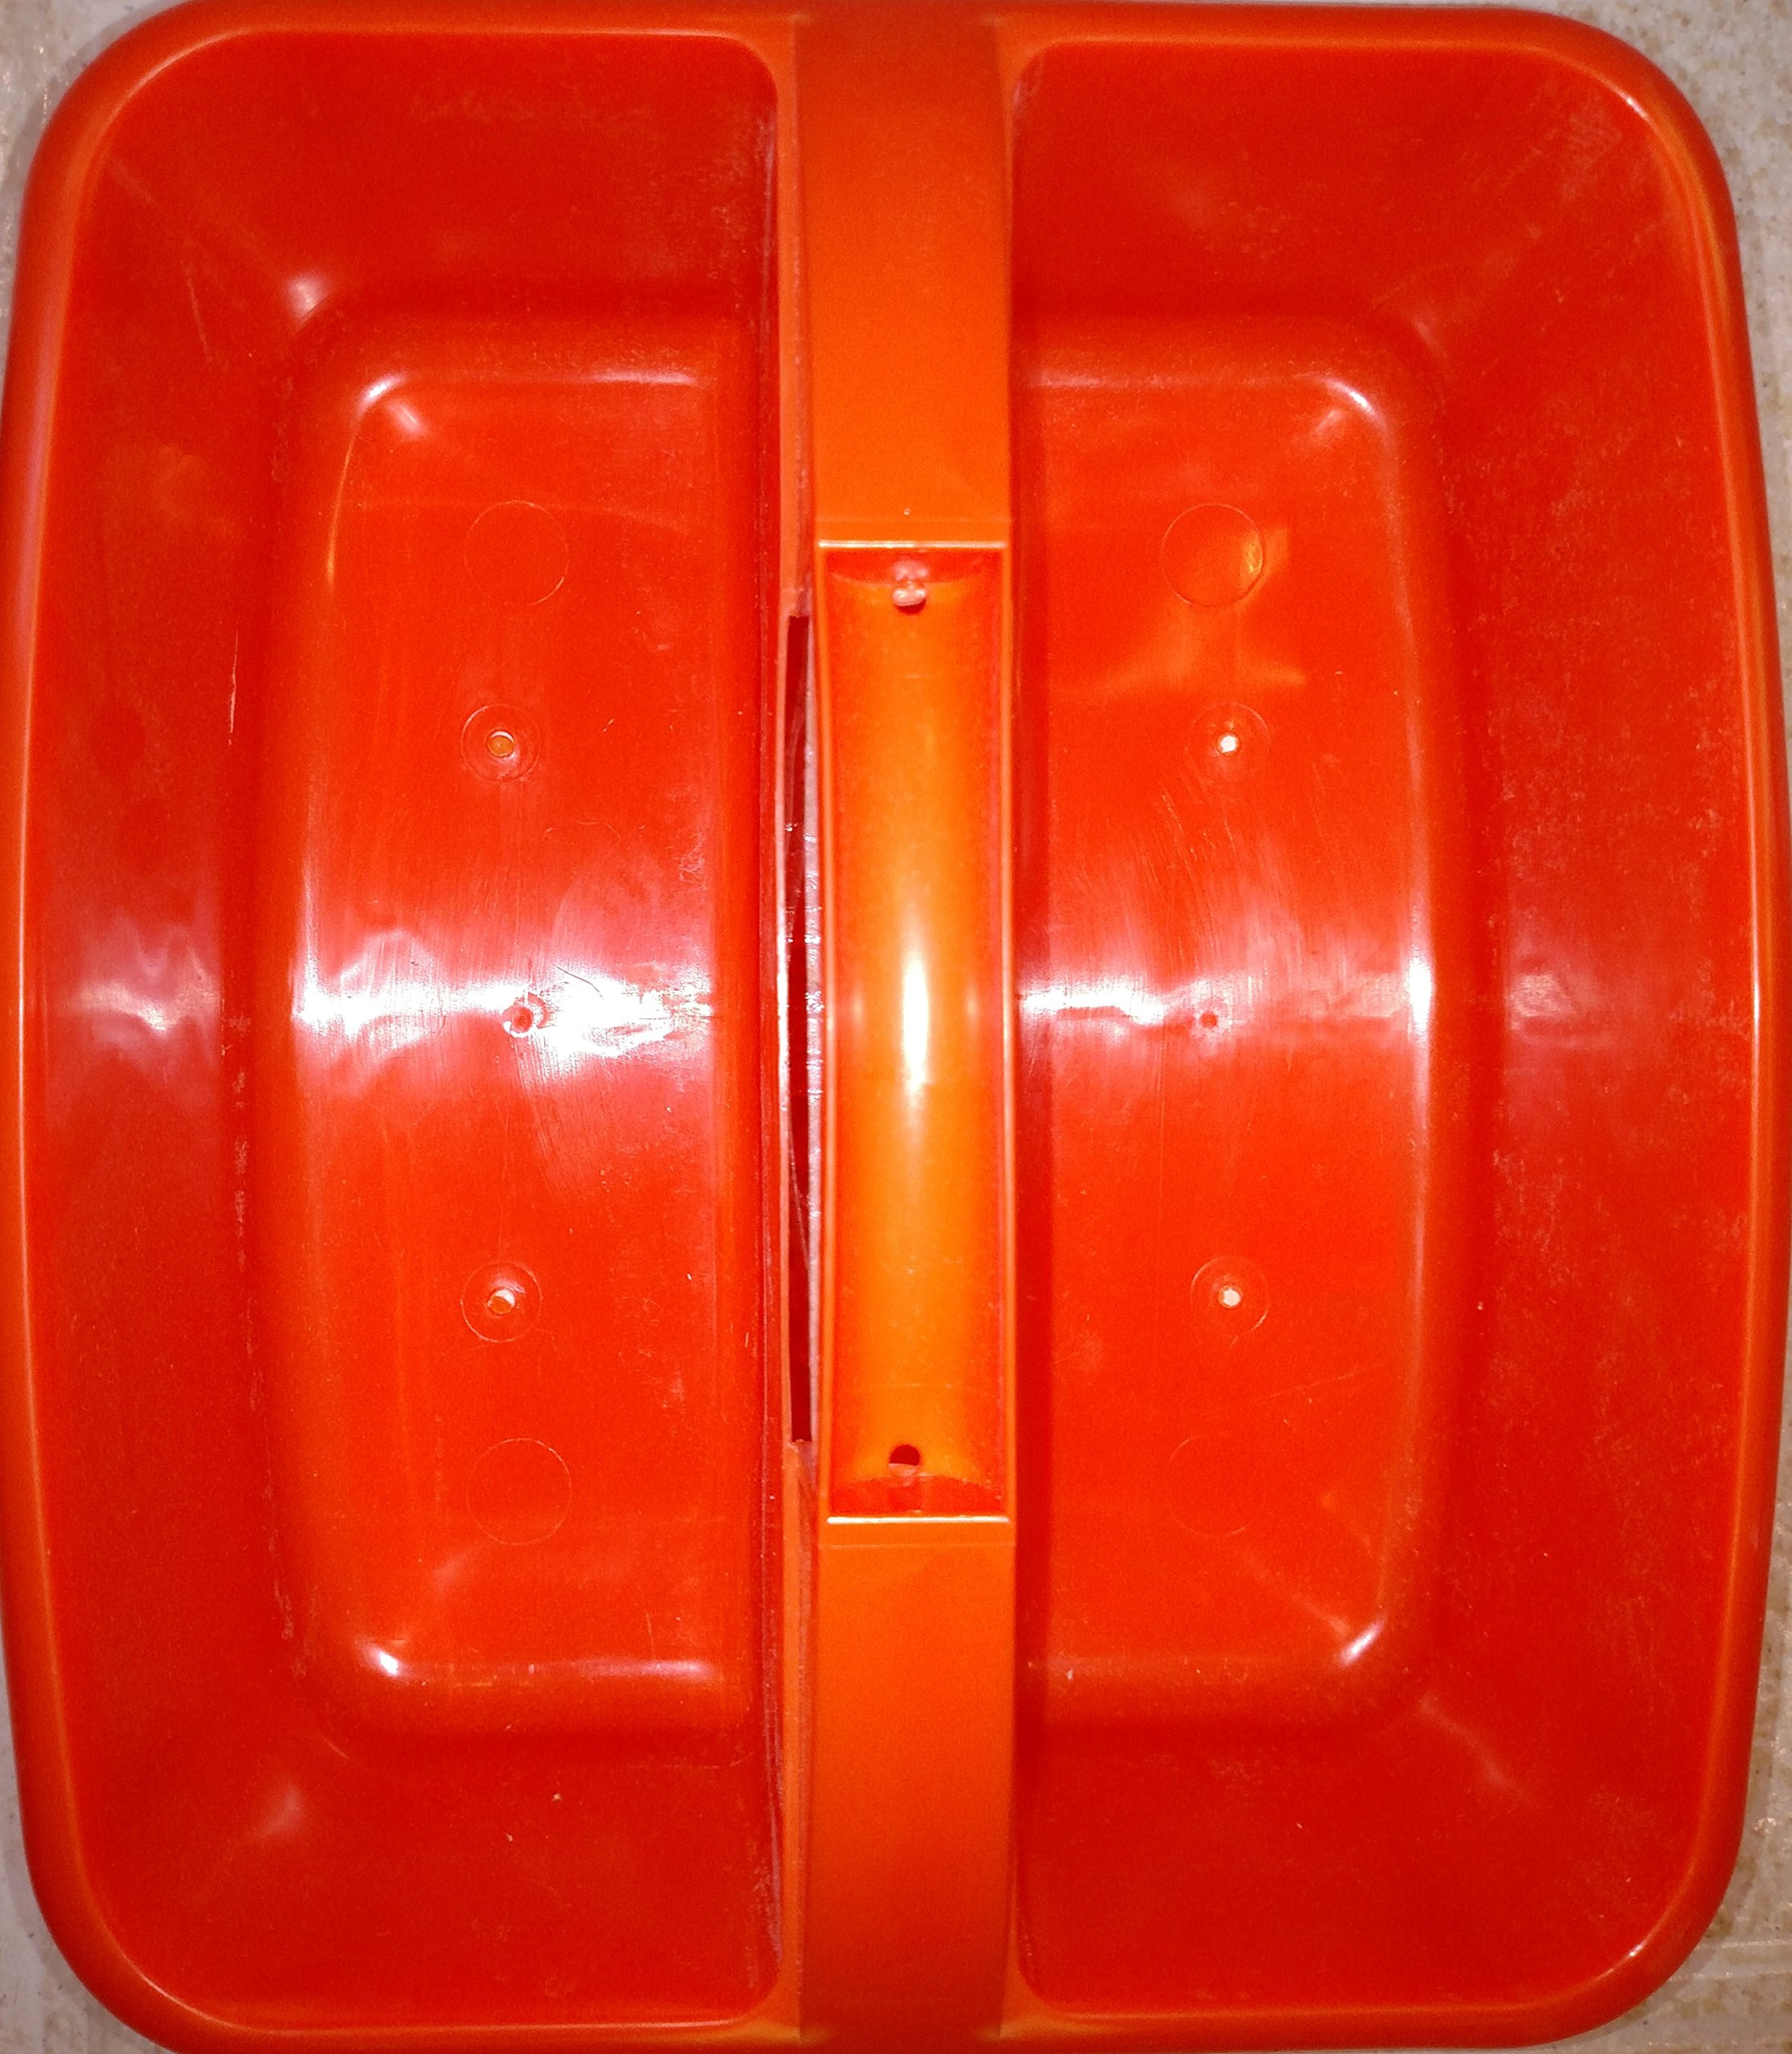 1 X Large Utility Caddy Orange By Romanoff Products